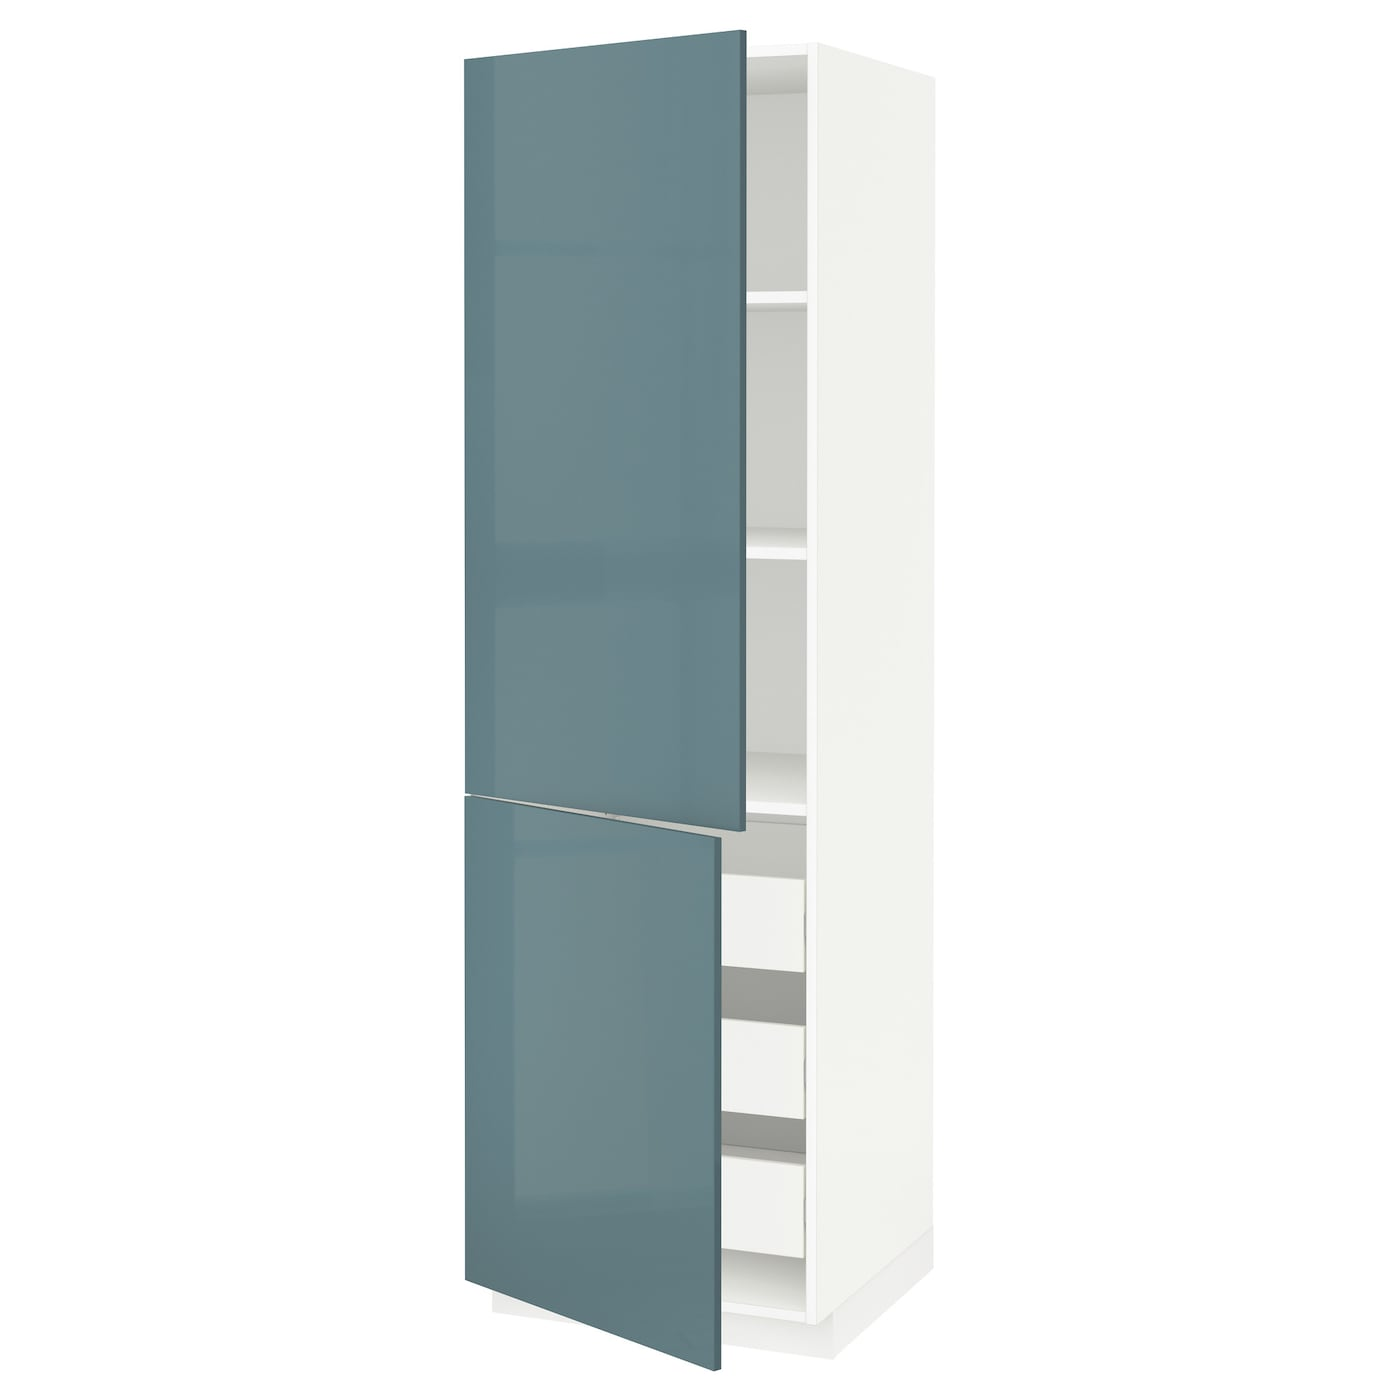 IKEA METOD/FÖRVARA hi cab w shlvs/3 drawers/2 doors Sturdy frame construction, 18 mm thick.